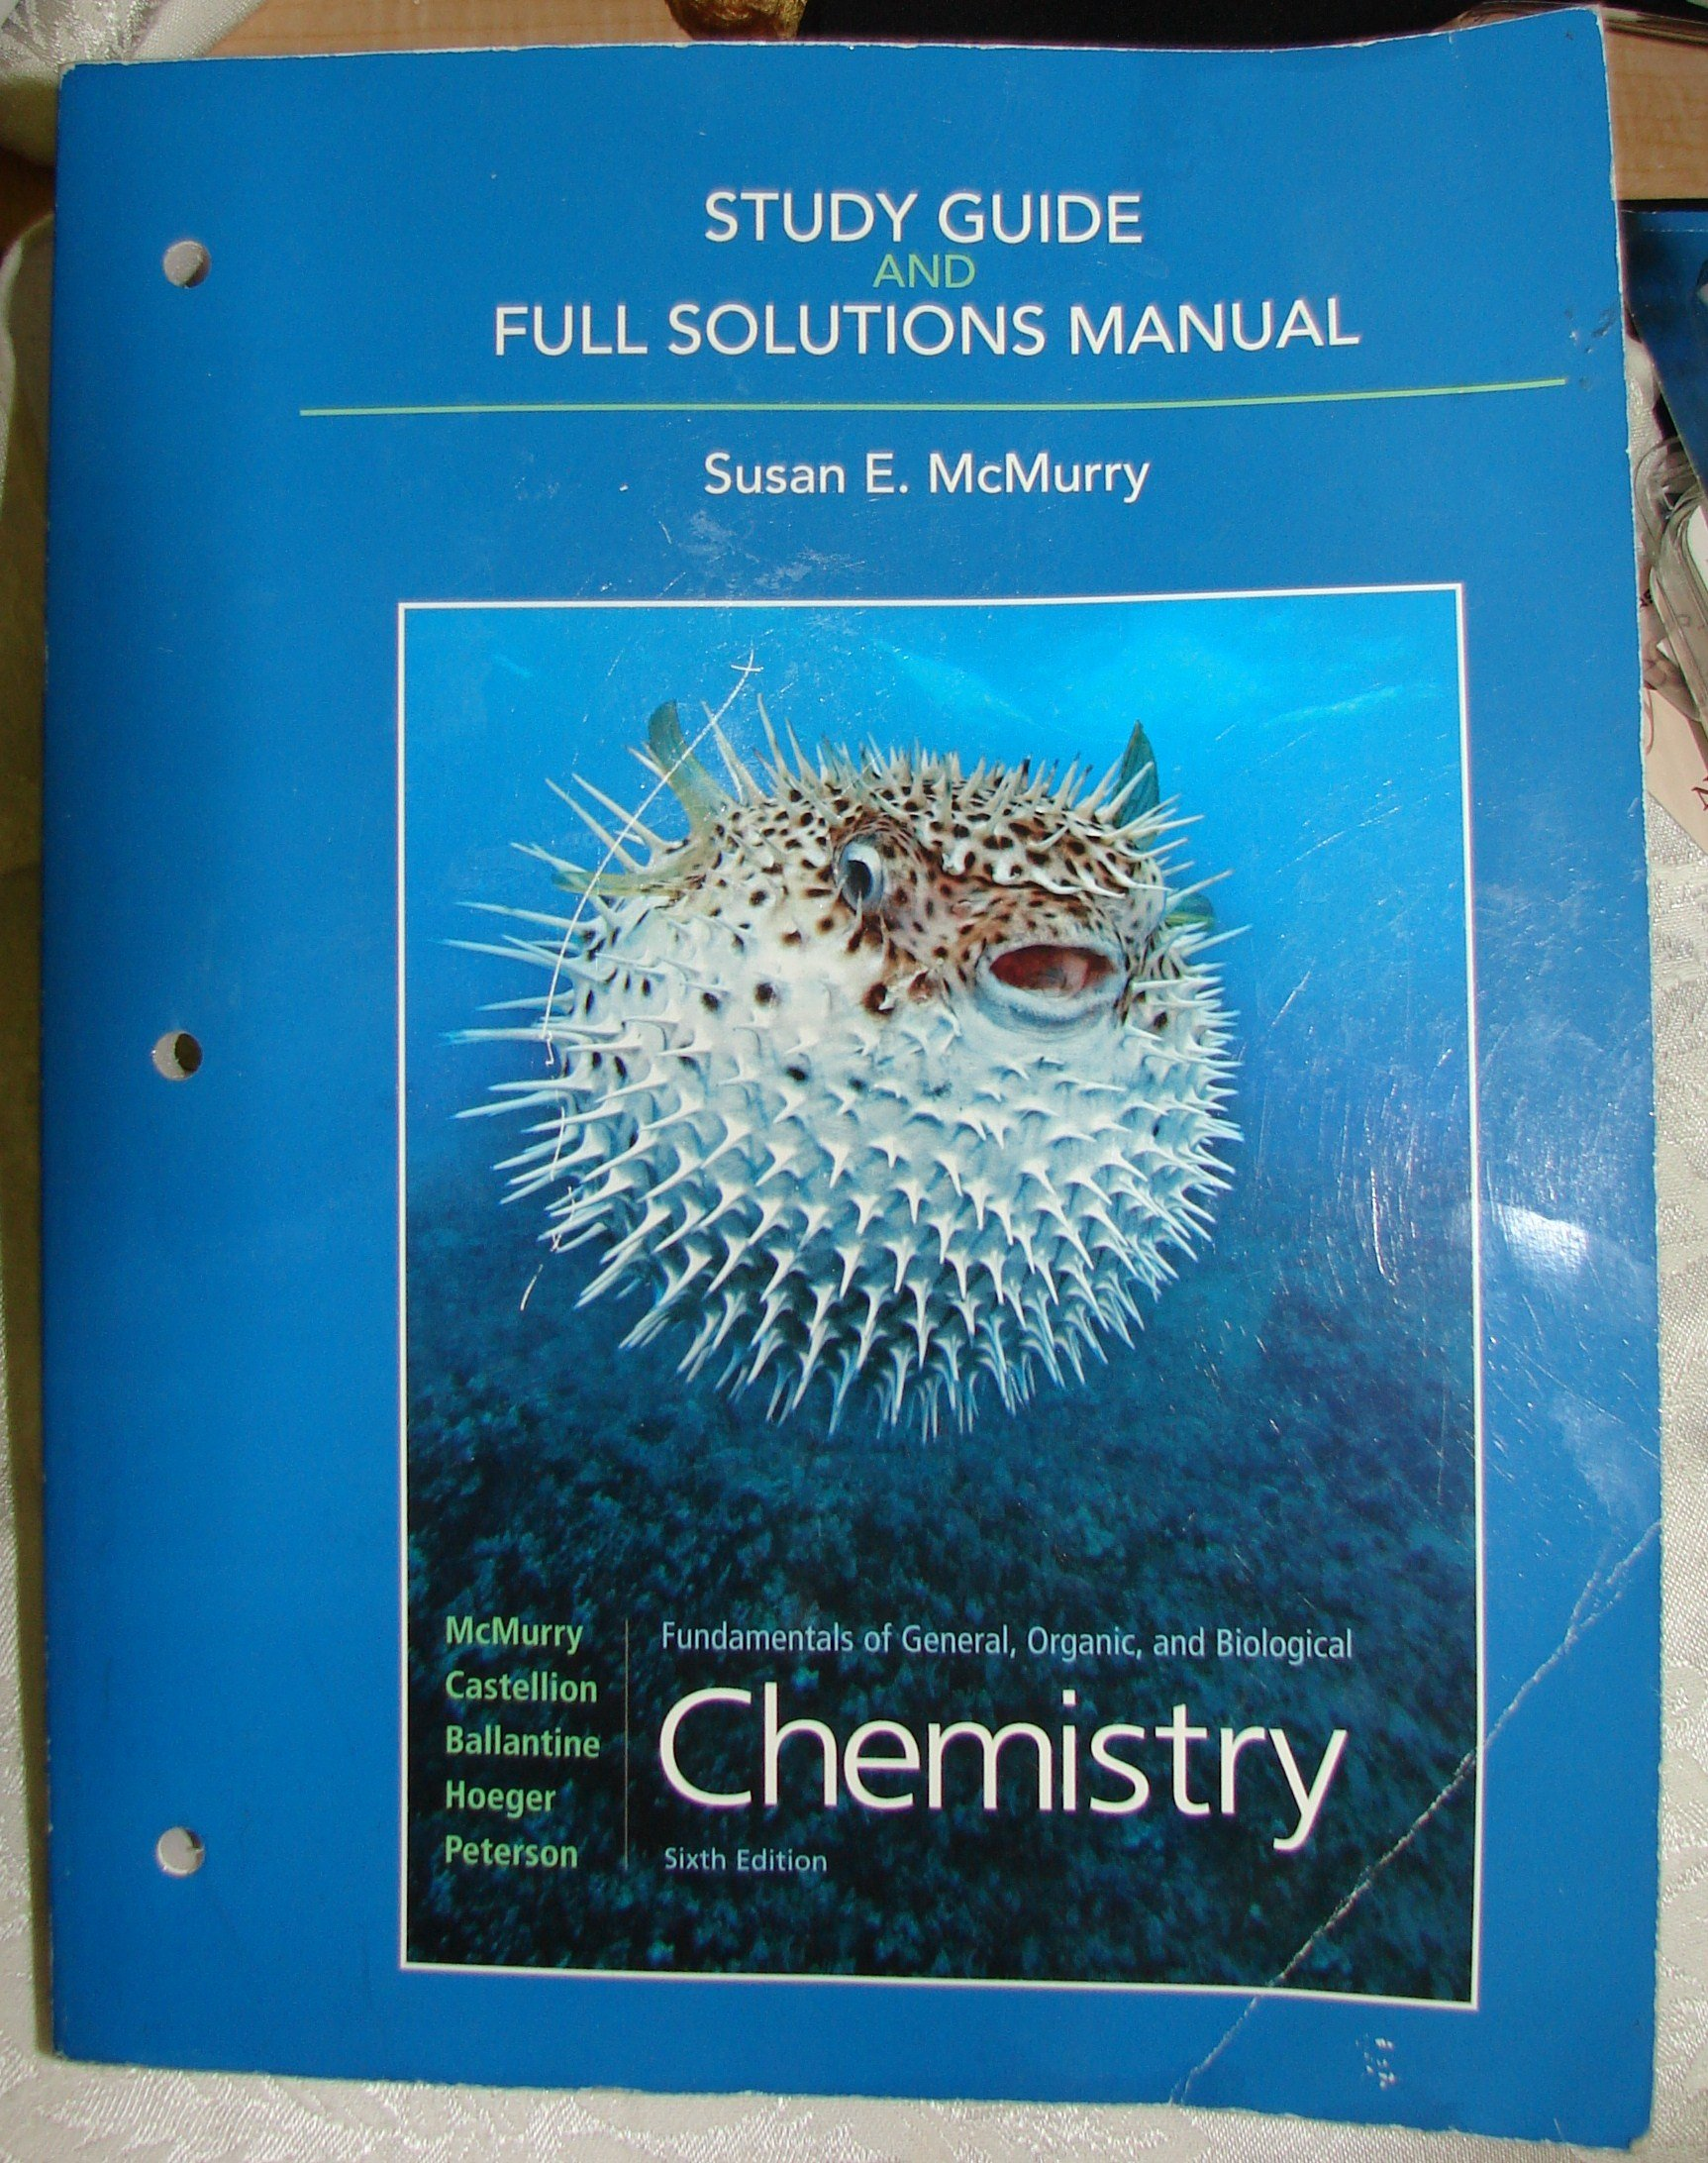 Chemistry - Study Guide & Full Solutions Manual - 6th Edition: Amazon.com:  Books